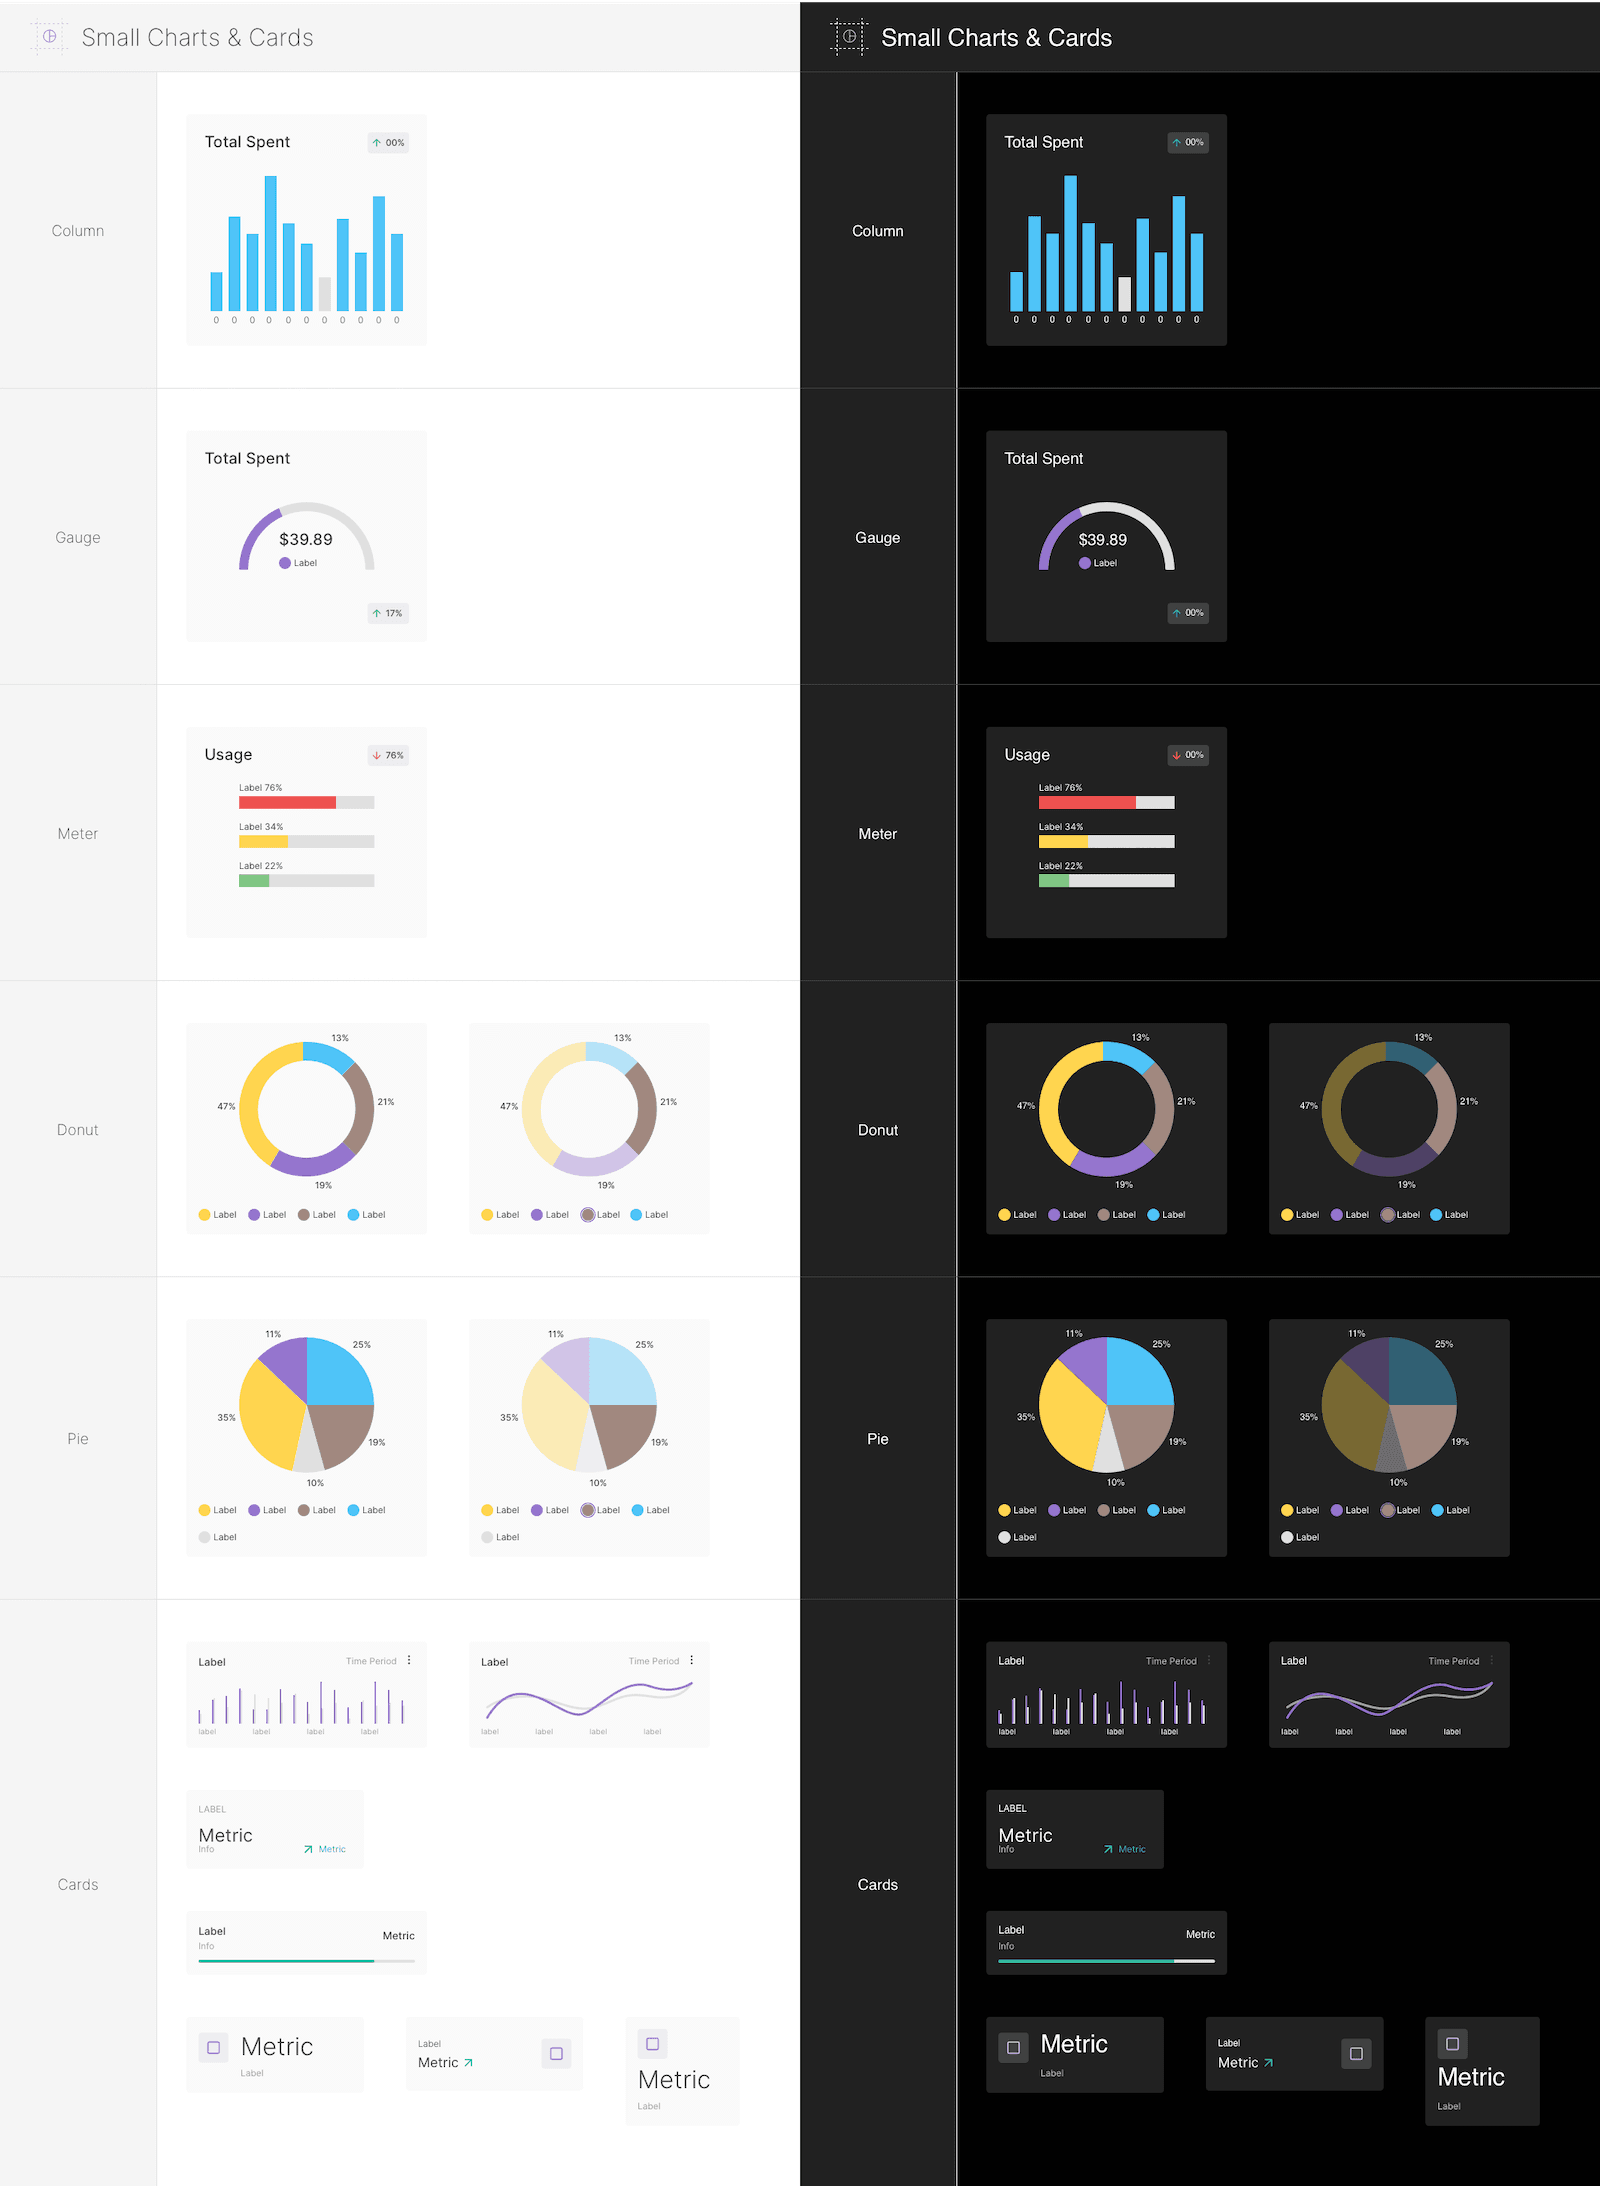 Components - Small Charts & Cards